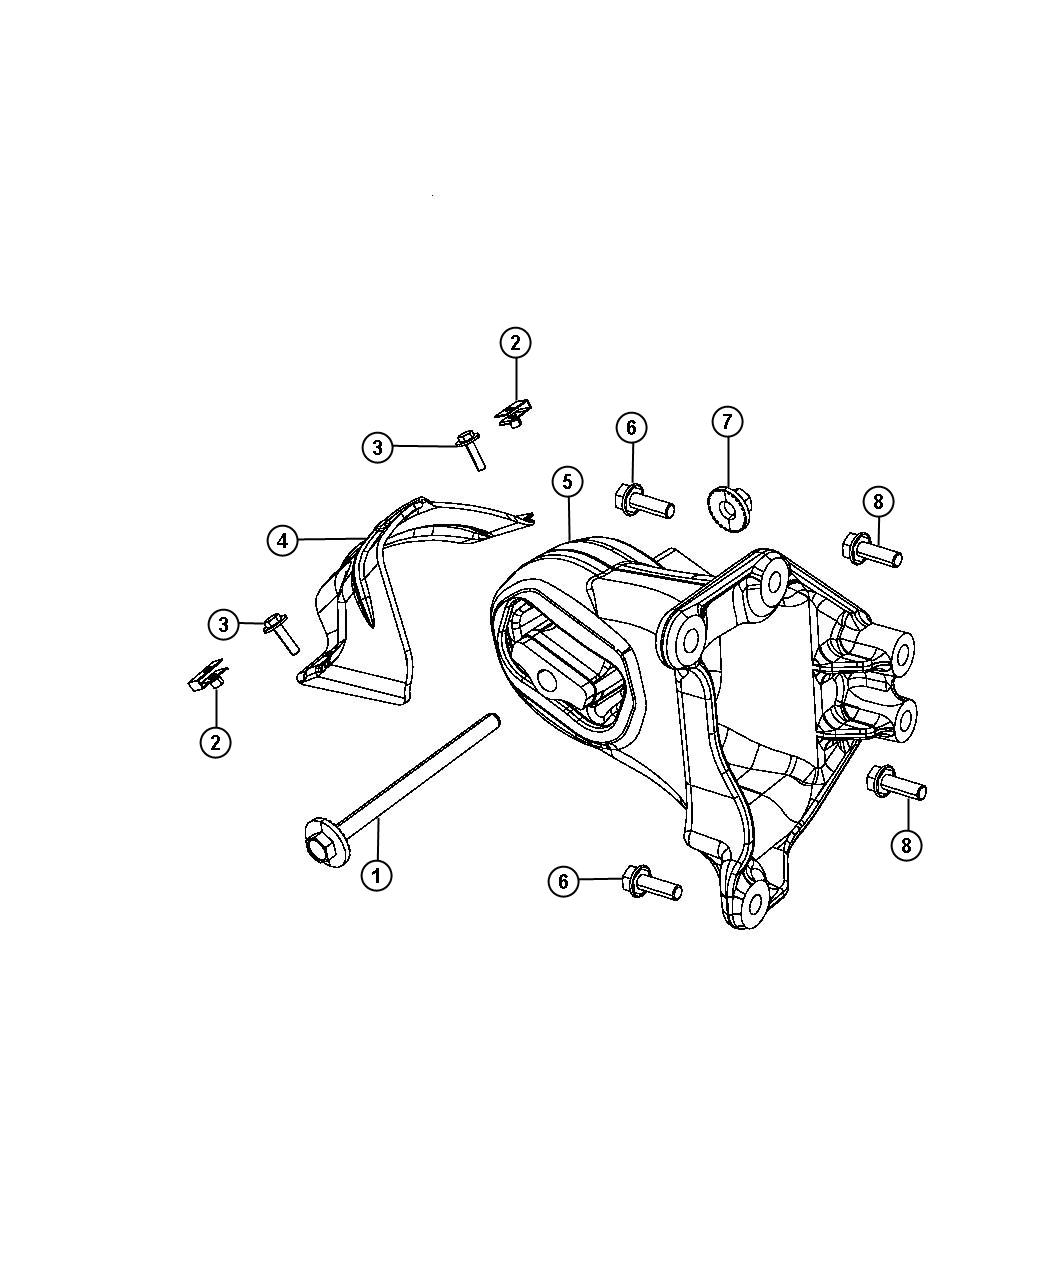 Jeep Wrangler Nut Used For Nut And Coned Washer